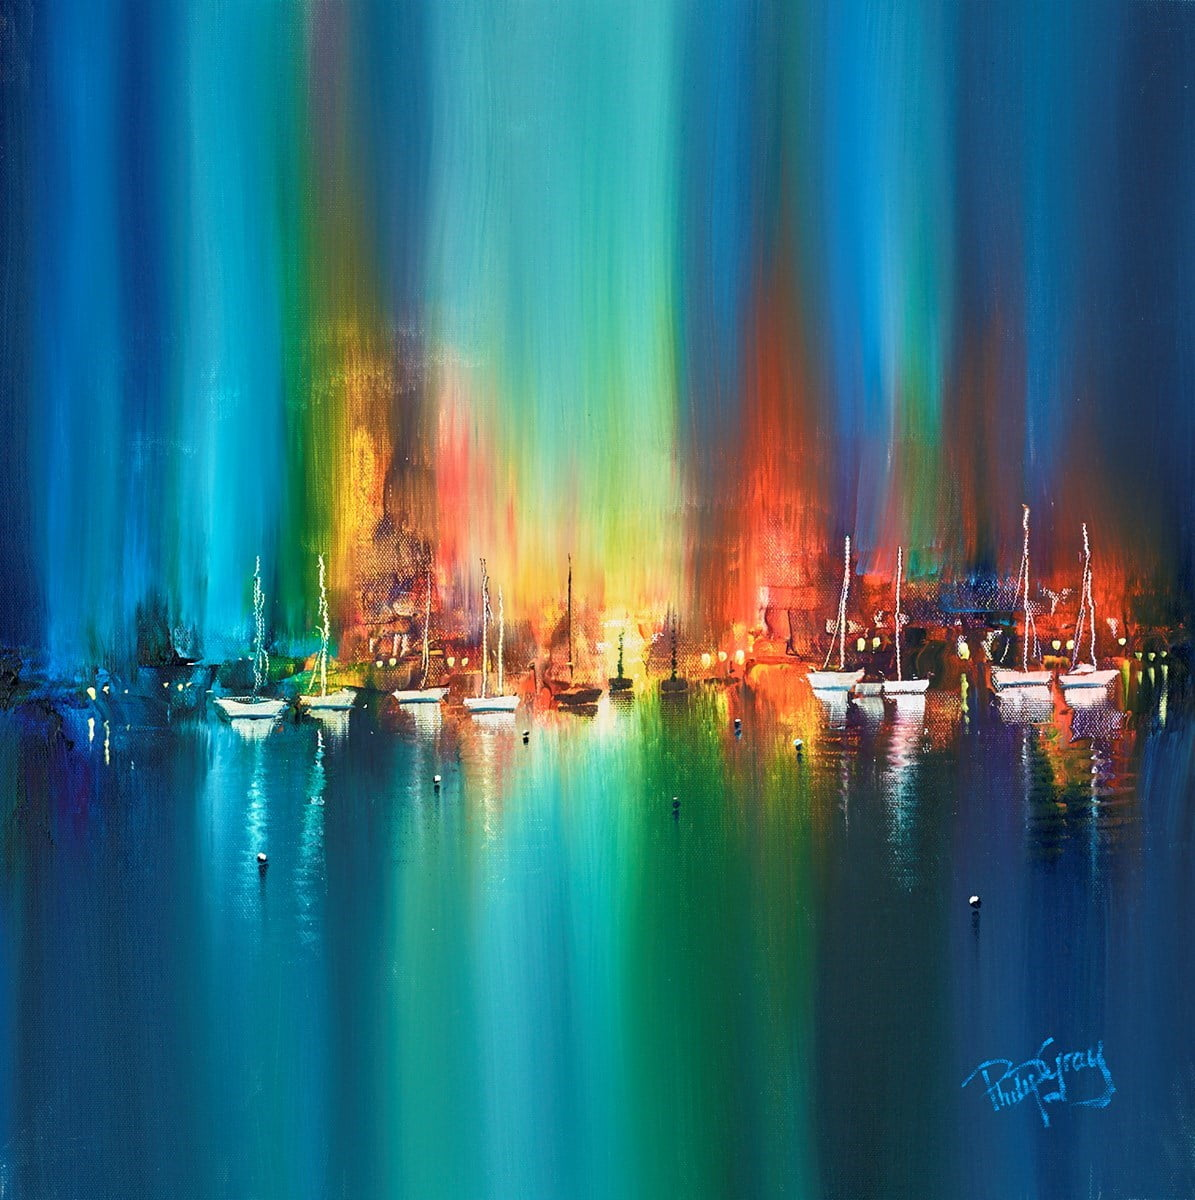 Lights over the Harbour ~ Philip Gray